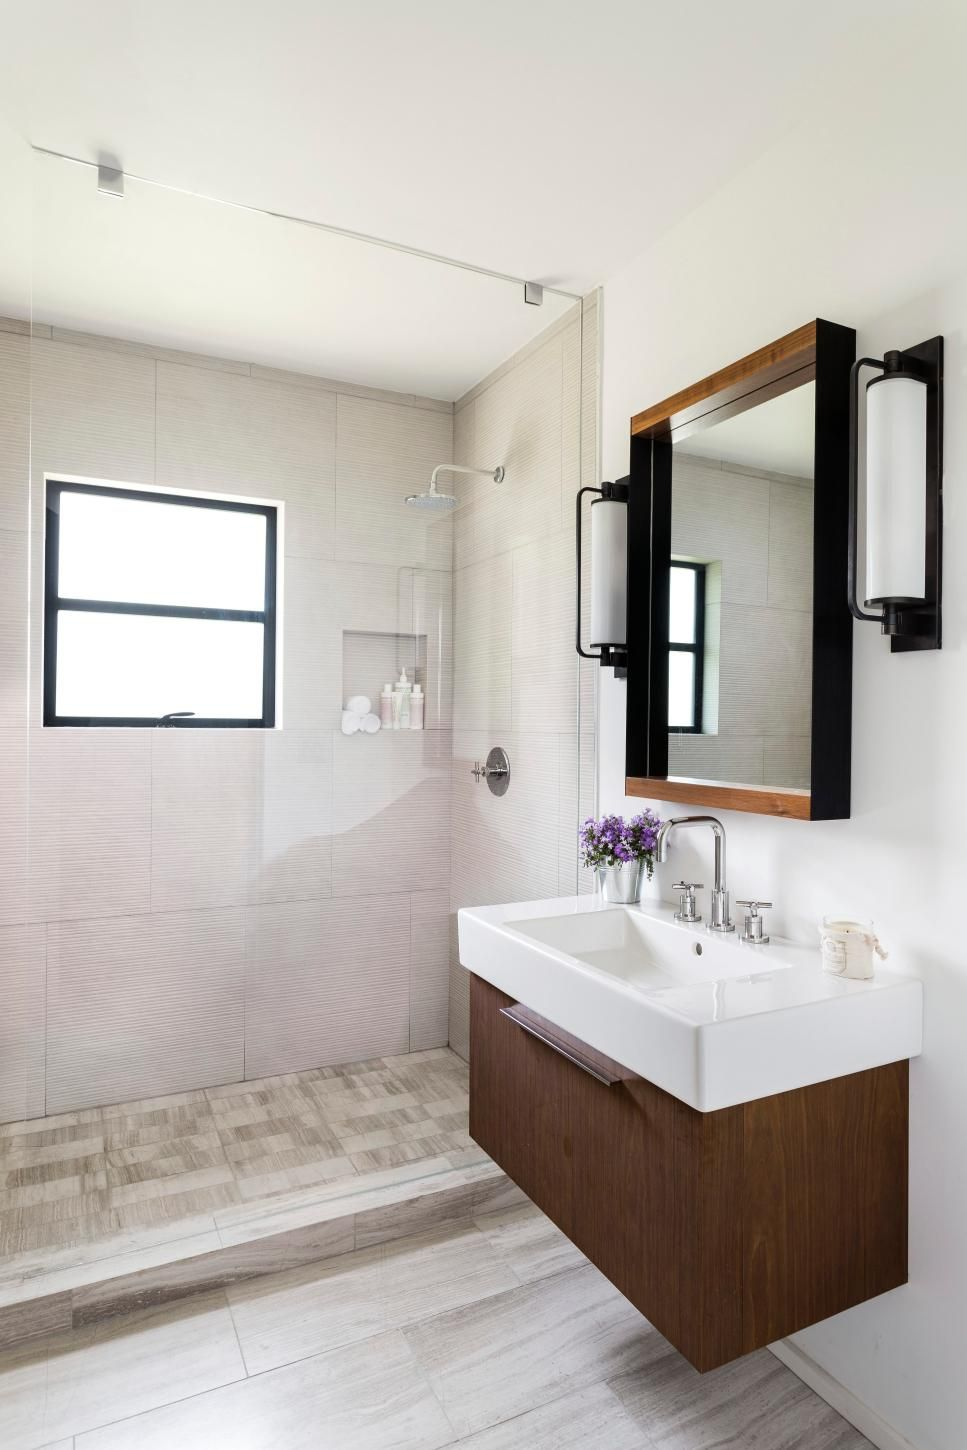 Inexpensive bathroom designs - Before And After Bathroom Remodels On A Budget